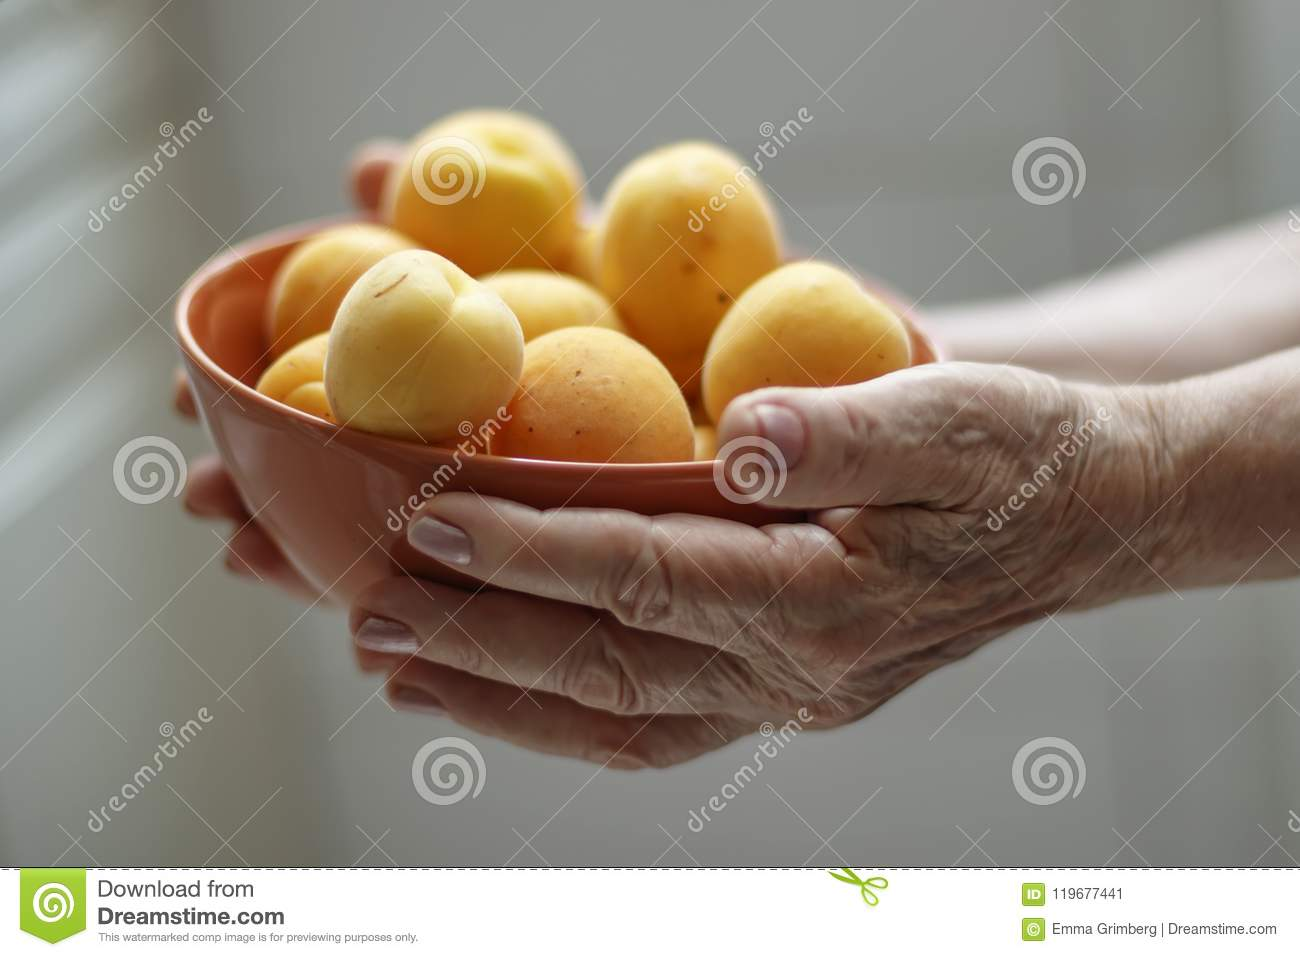 Hands of an elderly woman holding a bowl with apricots